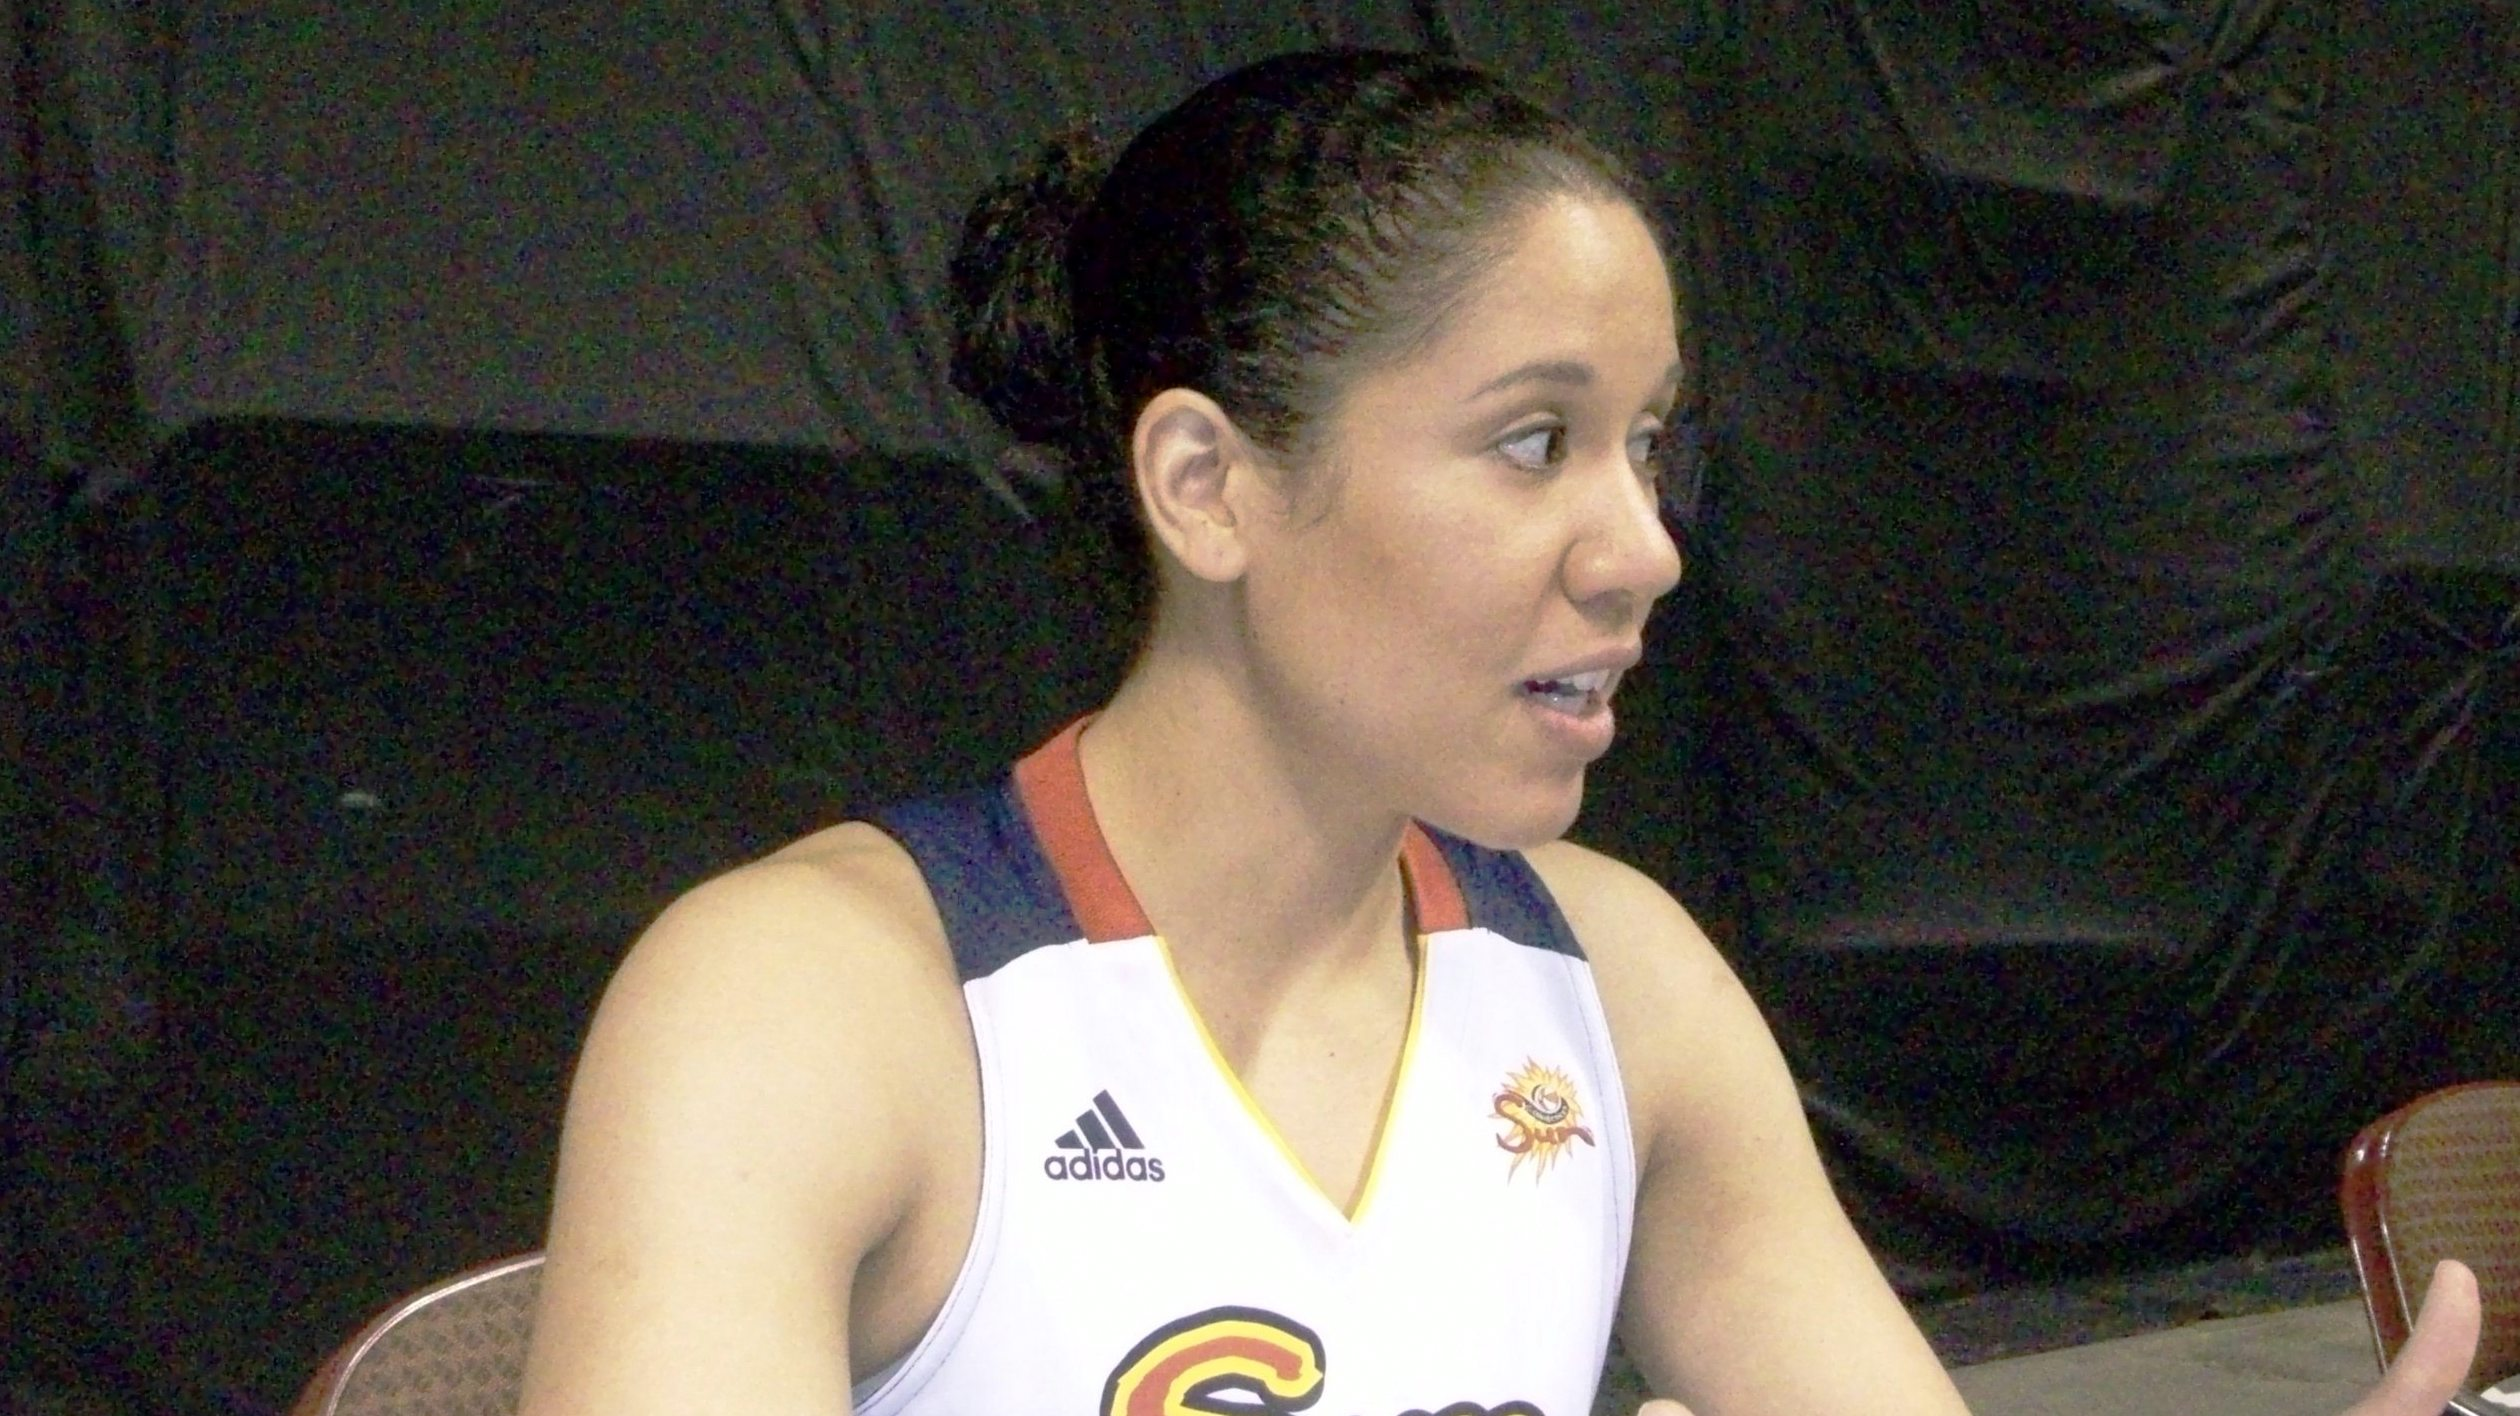 Despite changes in the Eastern Conference, Connecticut Sun show confidence at Media Day